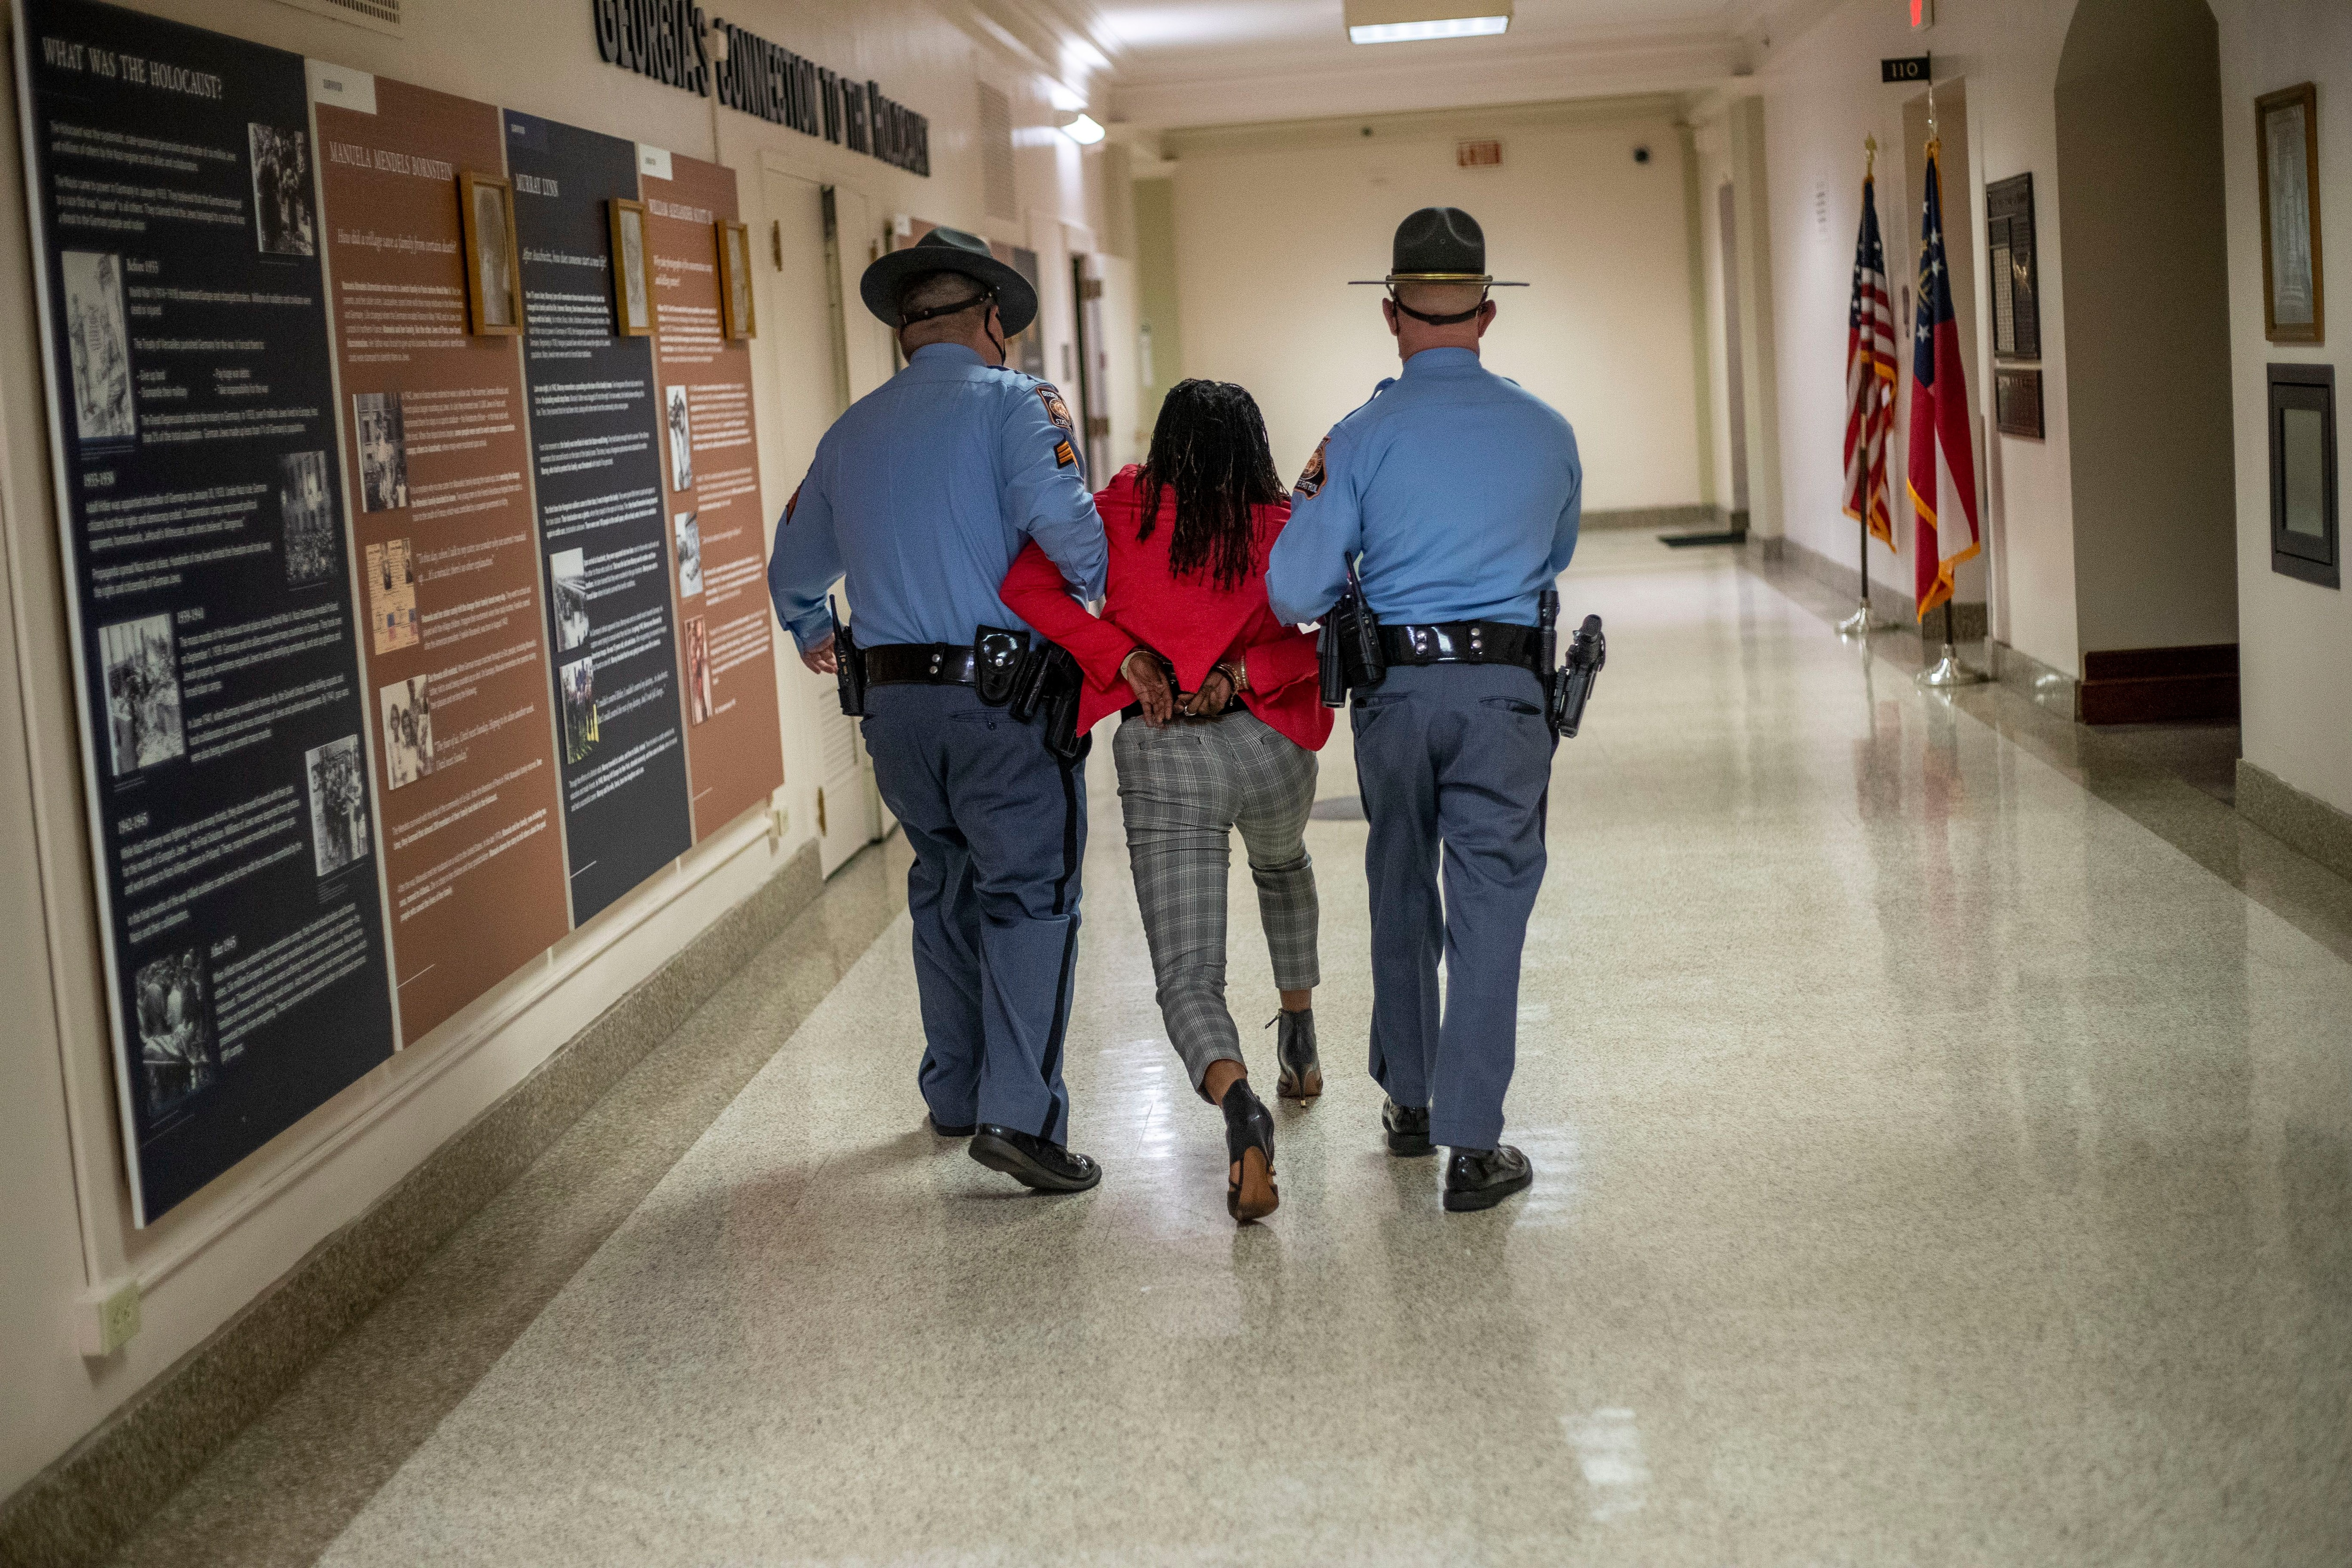 03/25/2021 —Atlanta, Georgia — Rep. Park Cannon (D-Atlanta) is escorted out of the Georgia Capitol Building by Georgia State Troopers after being asked to stop knocking on a door that lead to Gov. Brian Kemp's office while Gov. Kemp was signing SB 202 behind closed doors on day 38 of the legislative session at the Georgia State Capitol Building in Atlanta, Thursday, March 25, 2021. (Alyssa Pointer / Alyssa.Pointer@ajc.com)